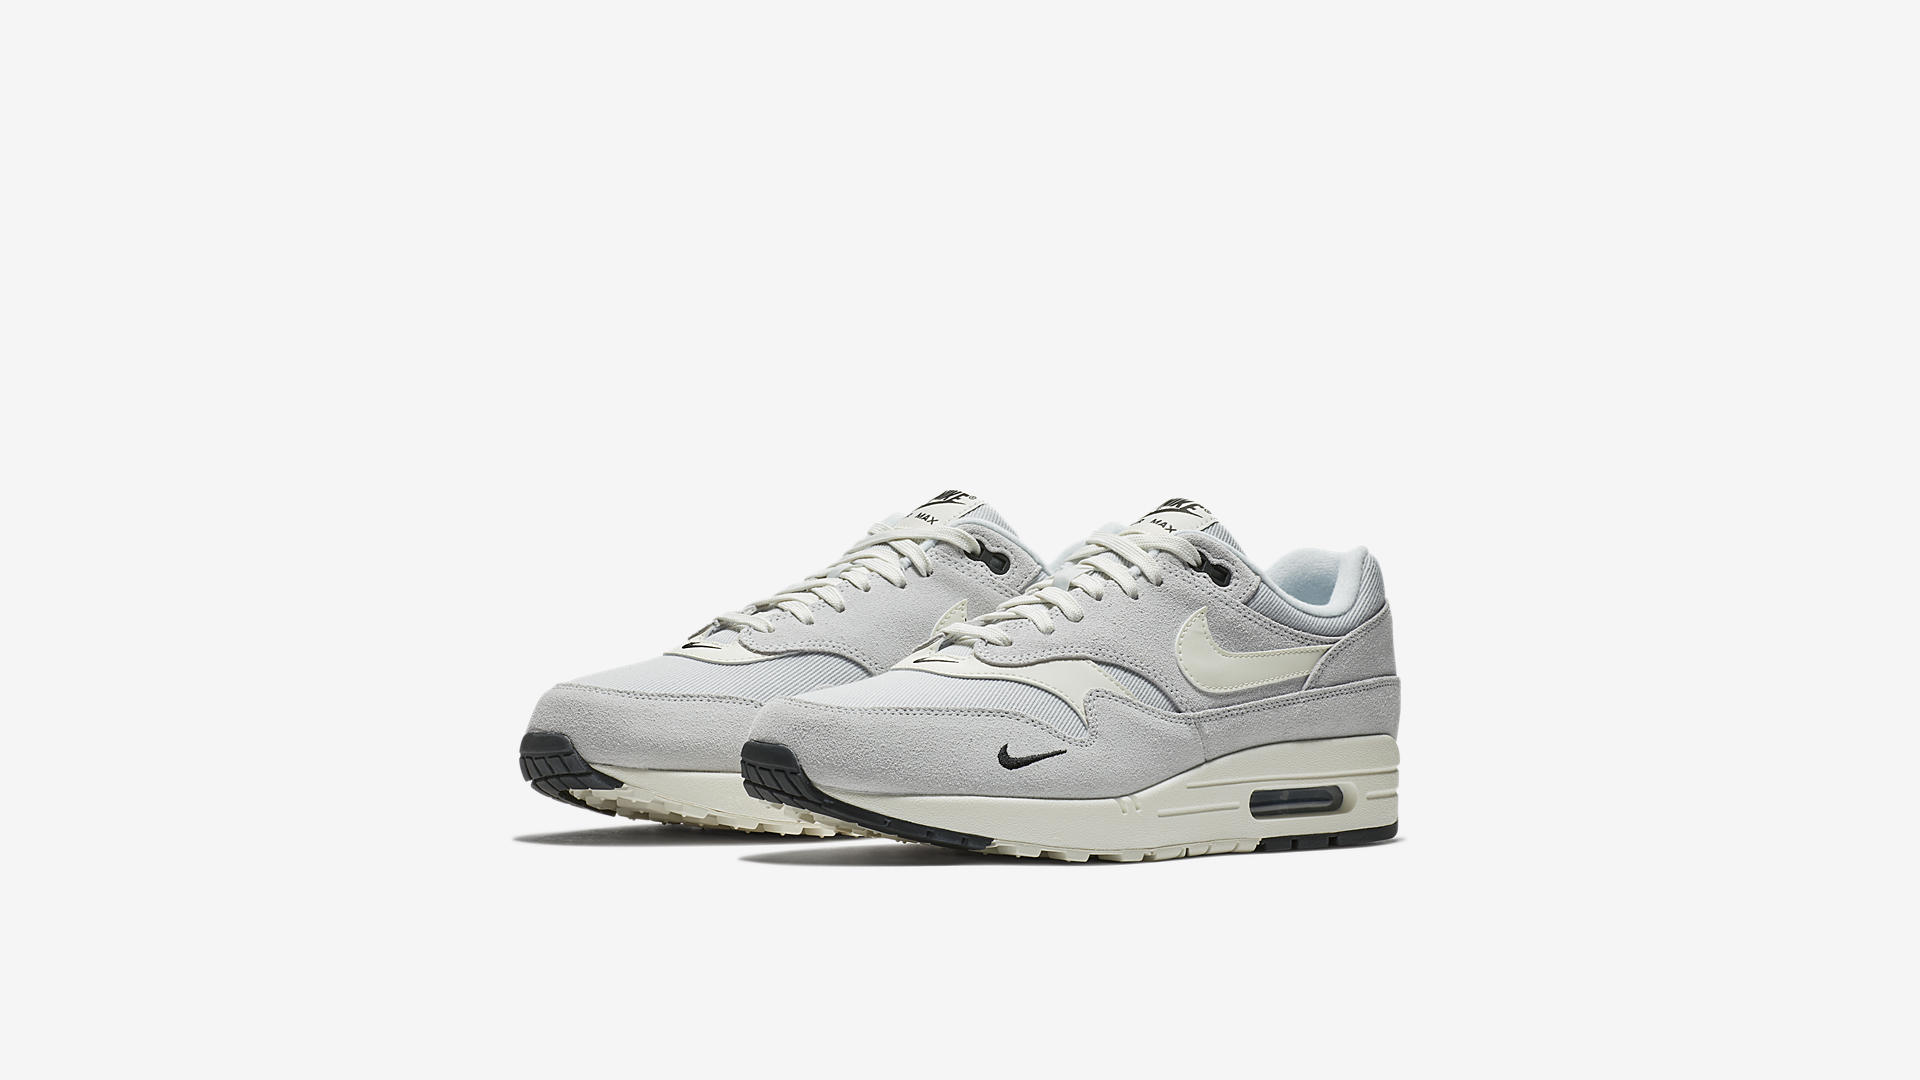 Nike Air Max 1 Premium Pure Platinum / Sail – Black – White (875844-006)